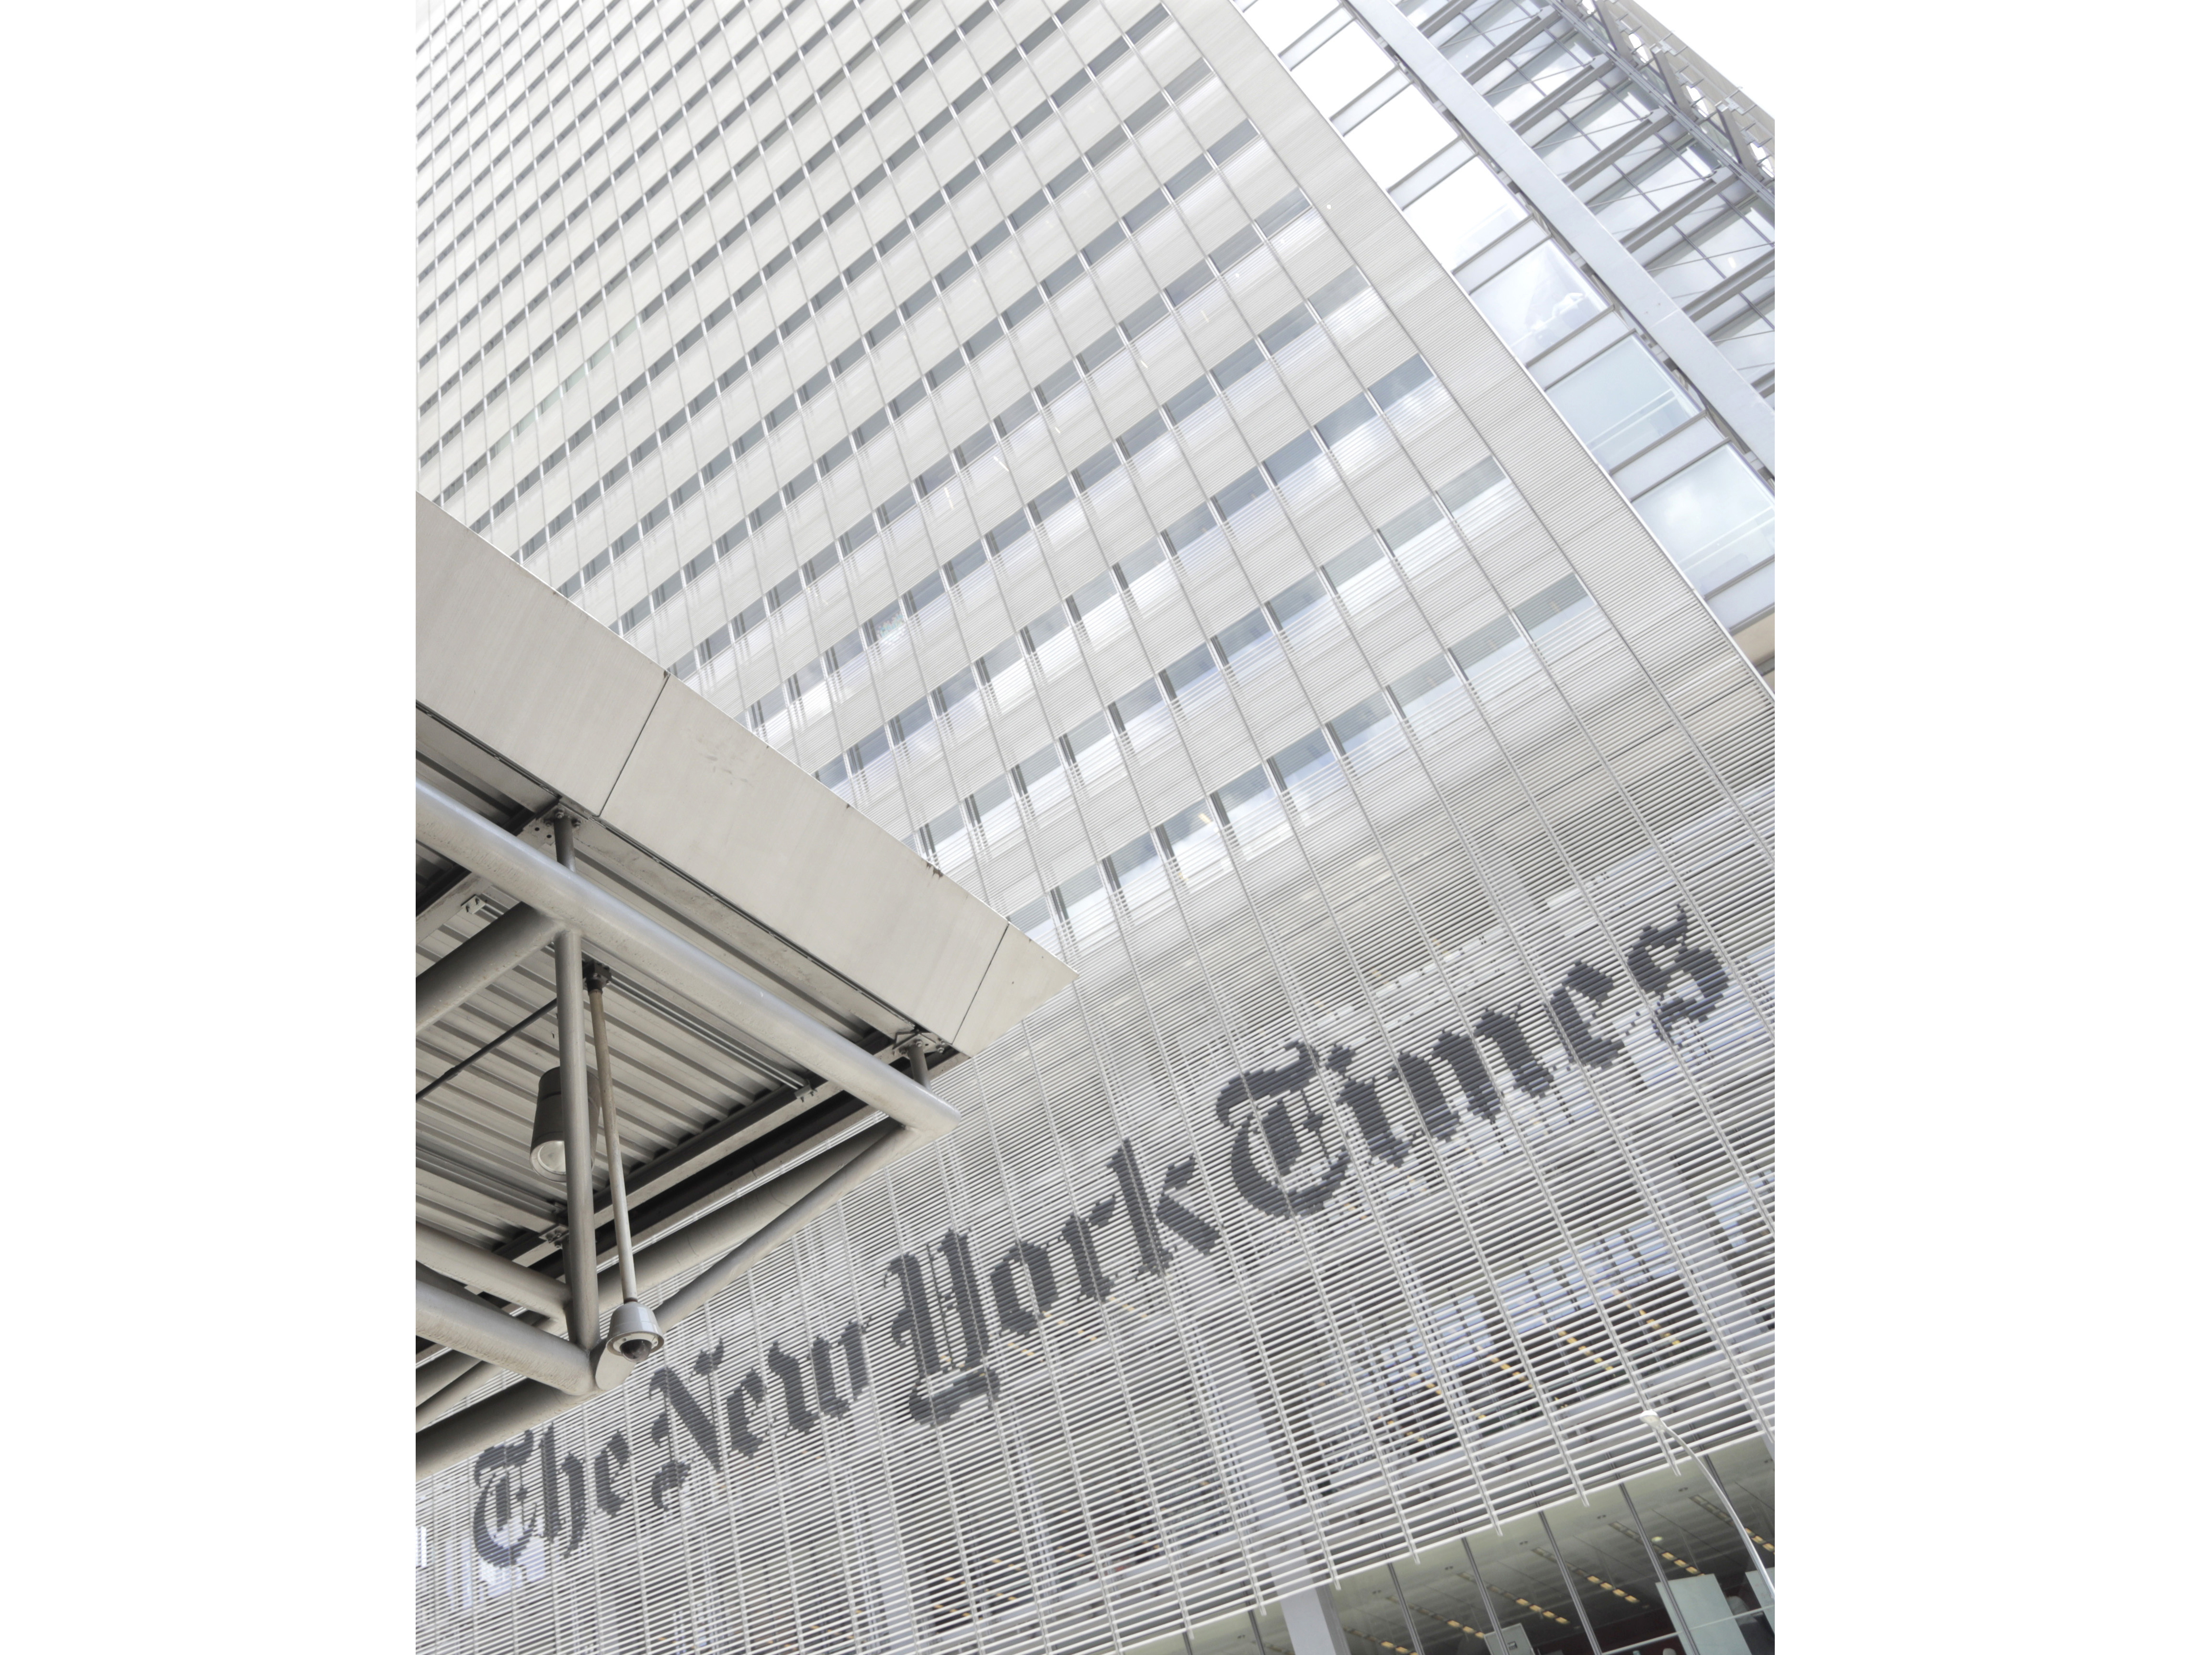 FILE - This June 22, 2019 file photo shows the exterior of the New York Times building in New York. The New York Times Co. said Wednesday, July 22, 2020, that it is promoting its chief operating officer, Meredith Kopit Levien, to CEO. She will start in the new role on Sept. 8, succeeding Mark Thompson, who has been president and CEO since 2012. (AP Photo/Julio Cortez, File)